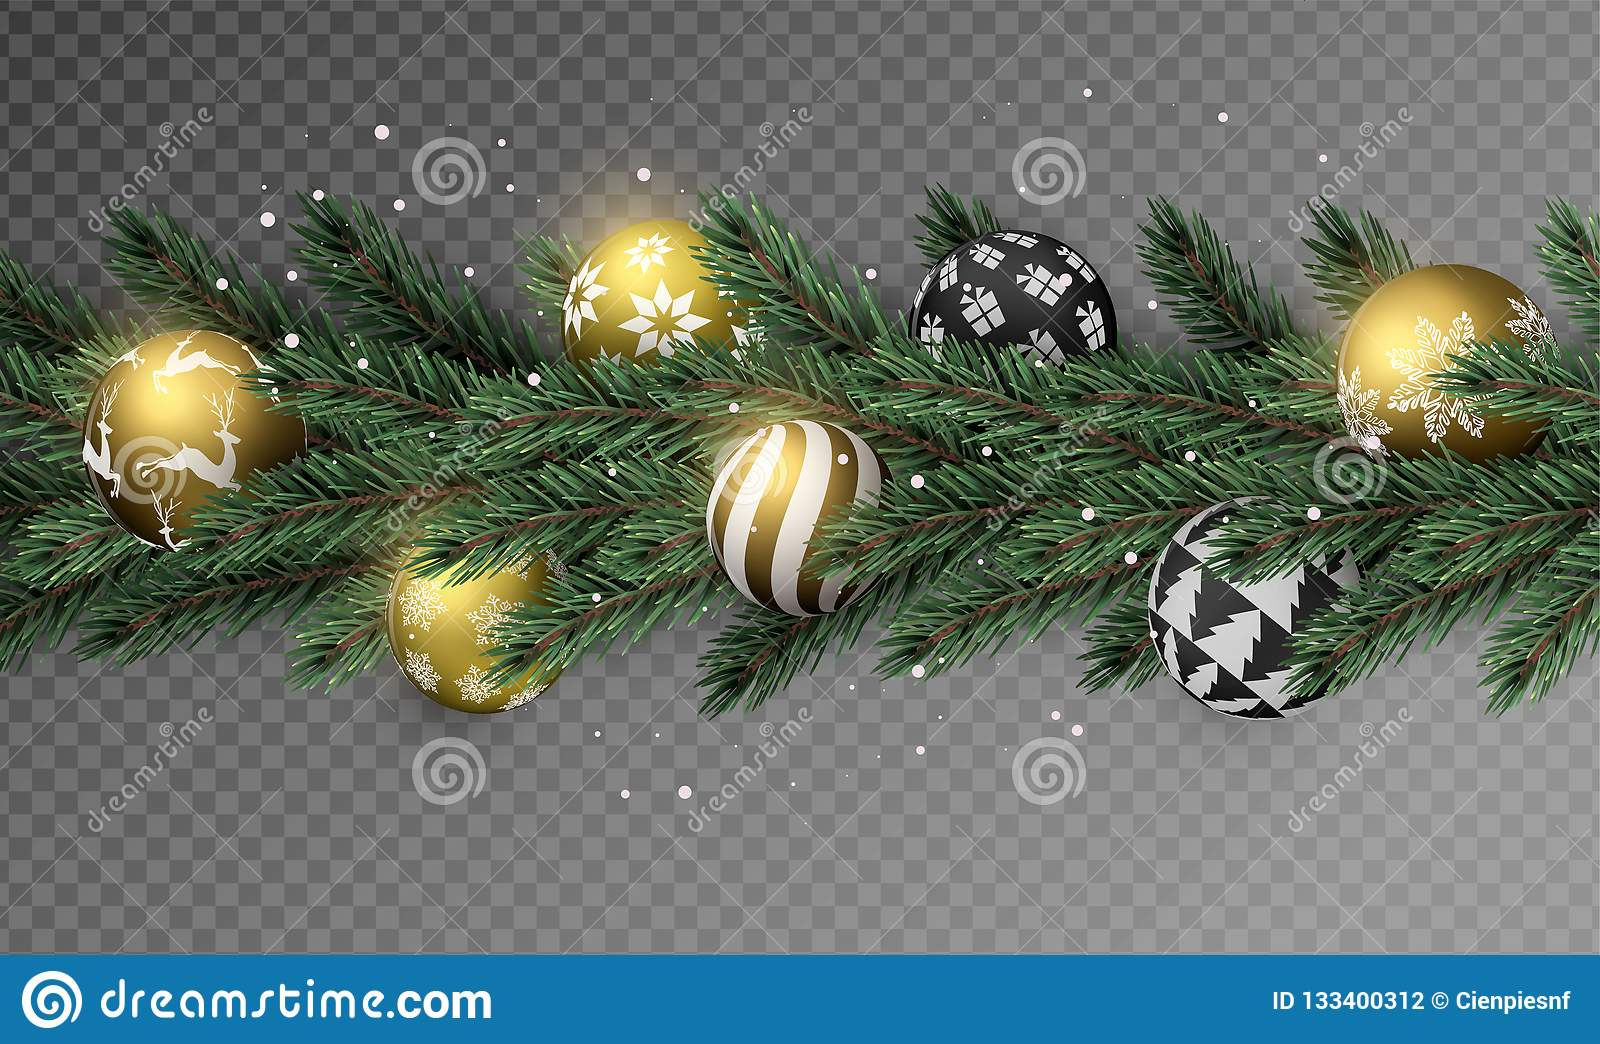 Transparent Christmas Garland With Gold Ornaments Stock Vector